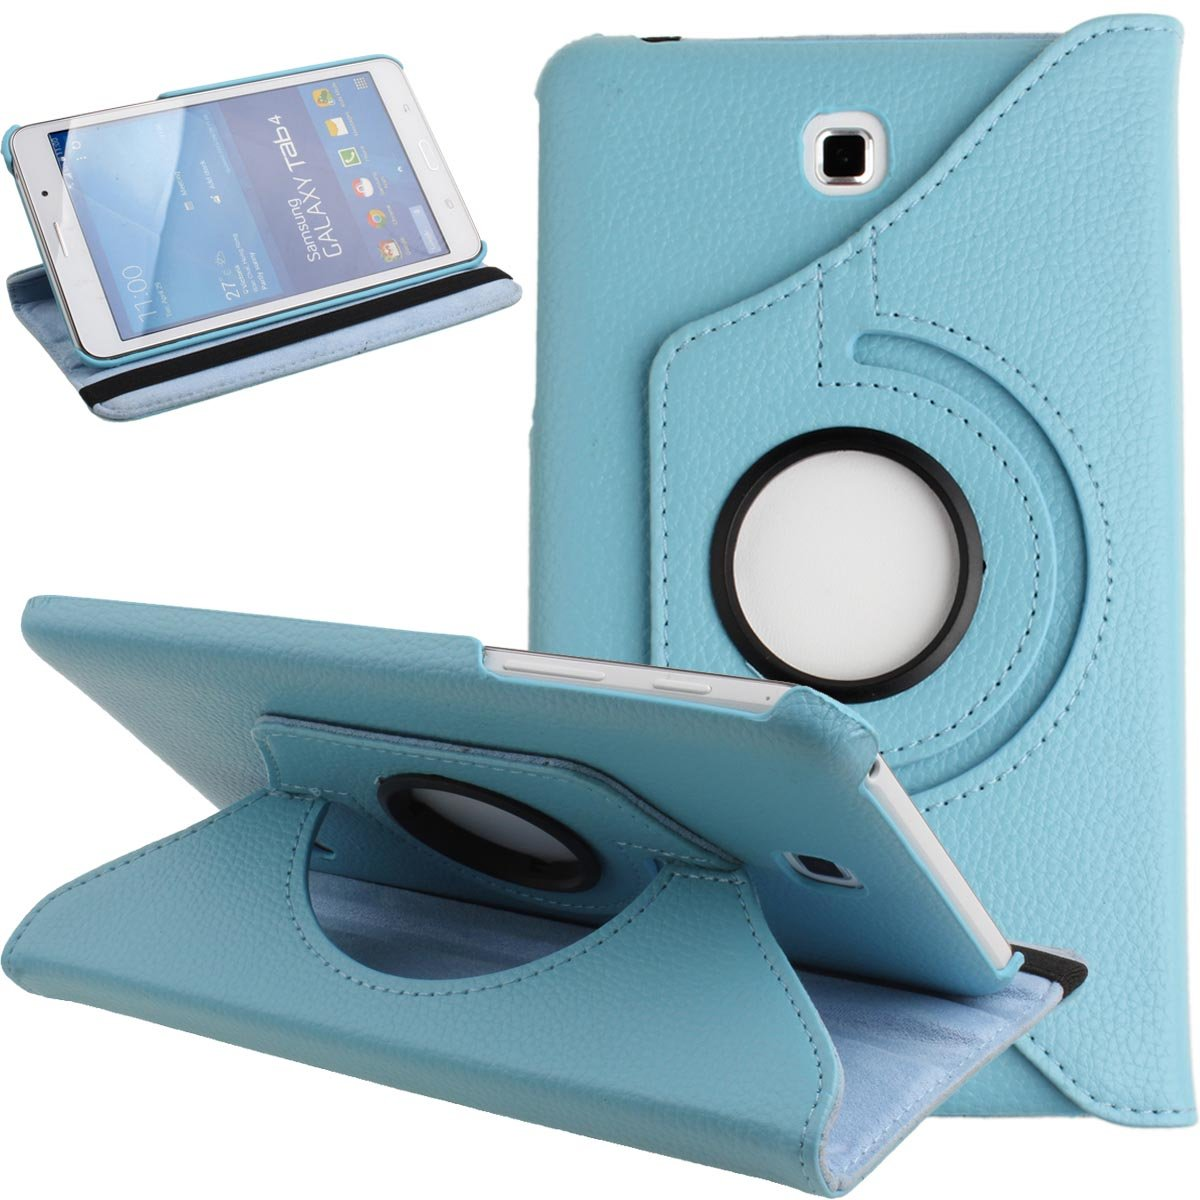 Funda For Samsung Galaxy Tab 4 7.0 T230 T235 SM T231 Cover For Samsung Tab 4 7.0